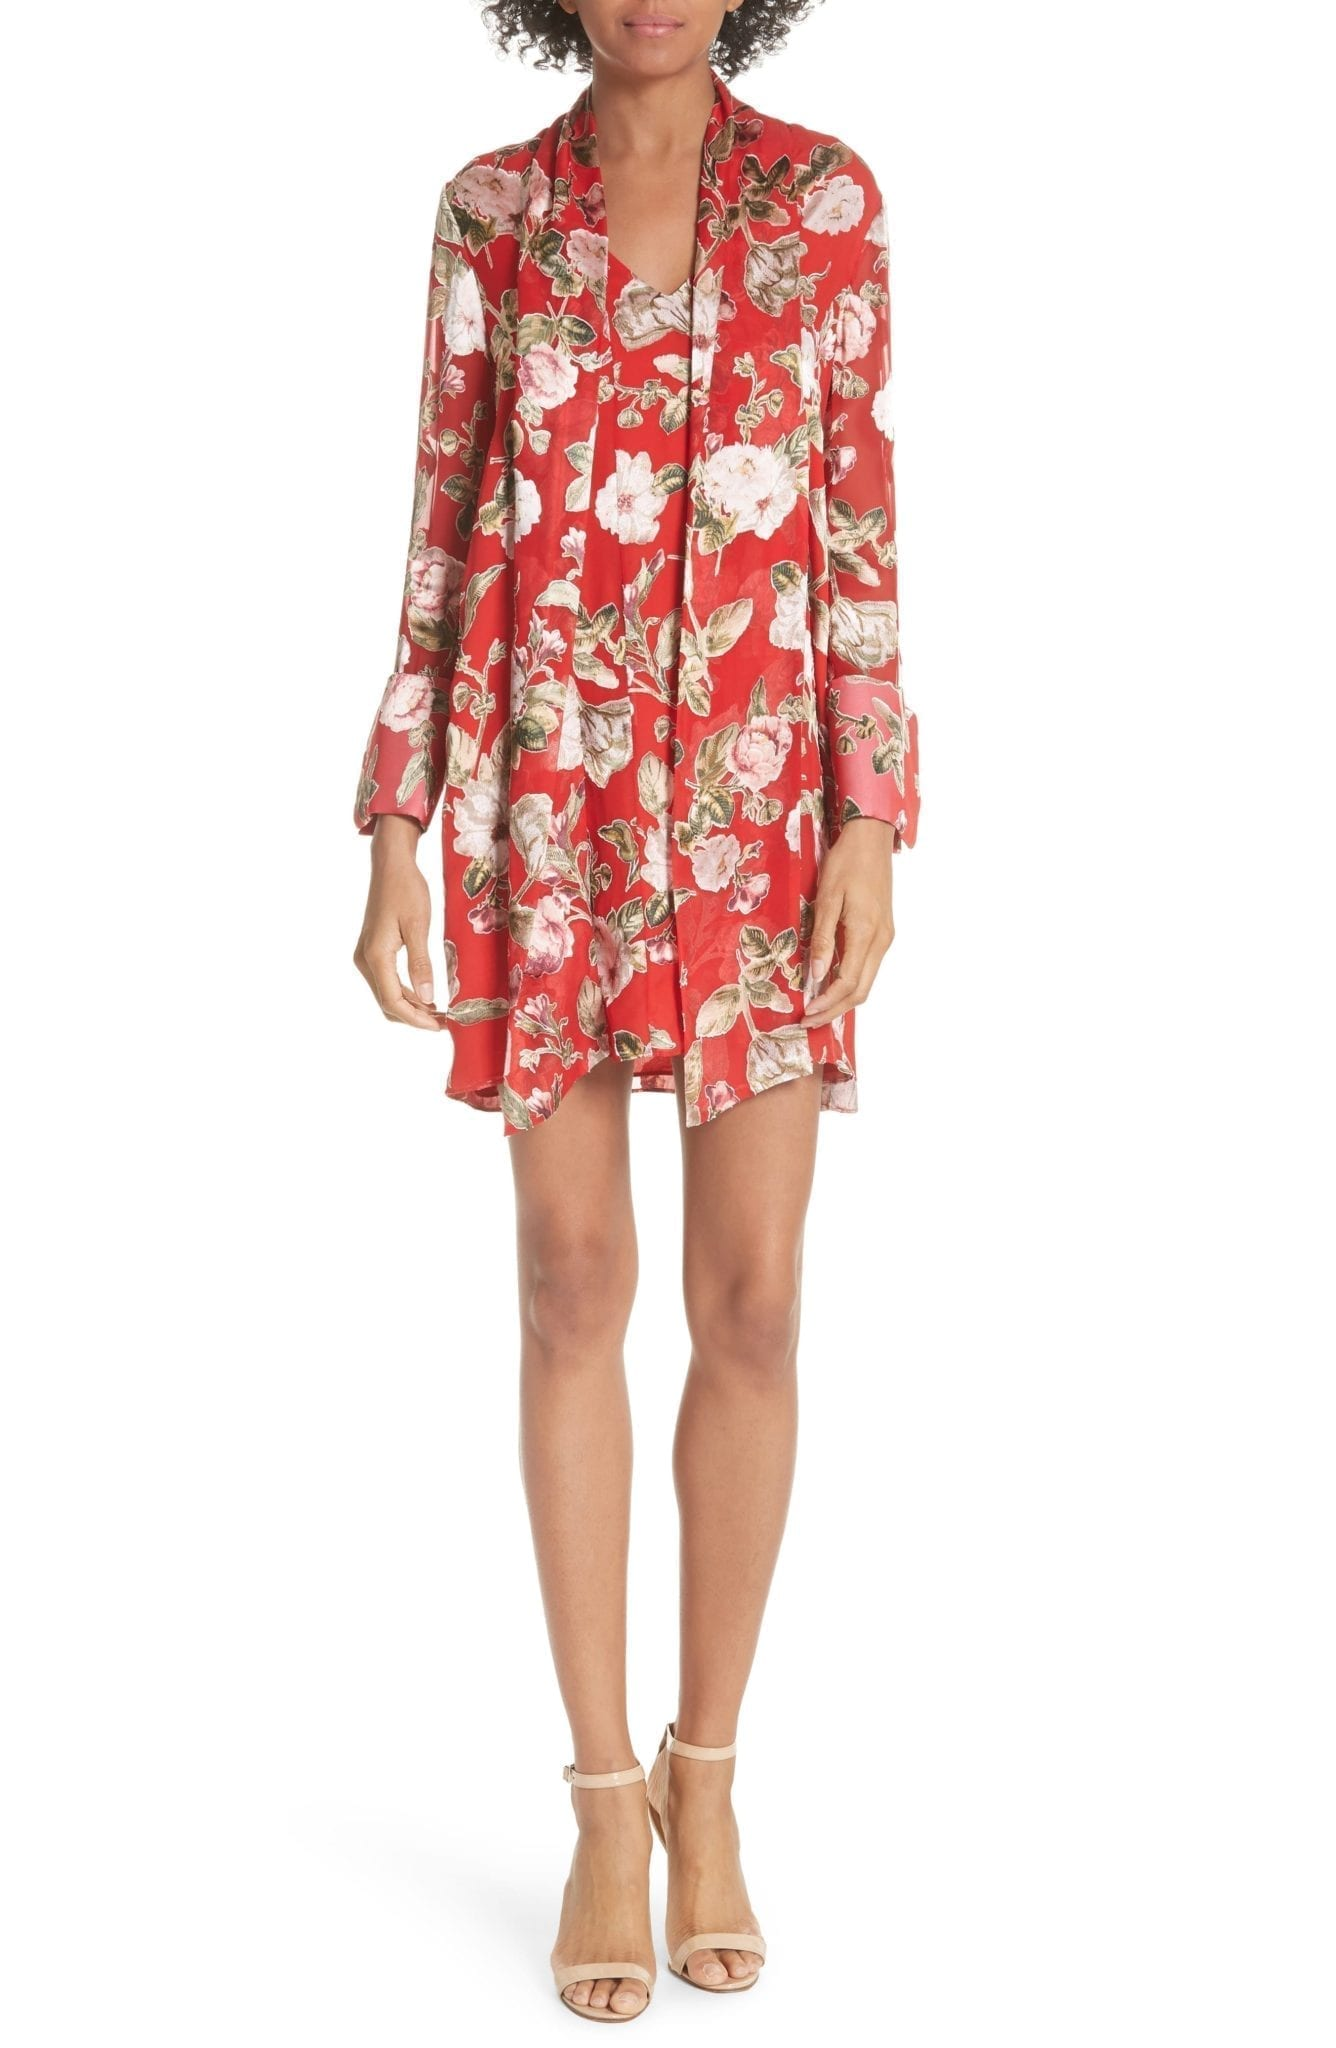 ALICE + OLIVIA Gwenda Paneled Tunic Poppy / Floral Printed Dress